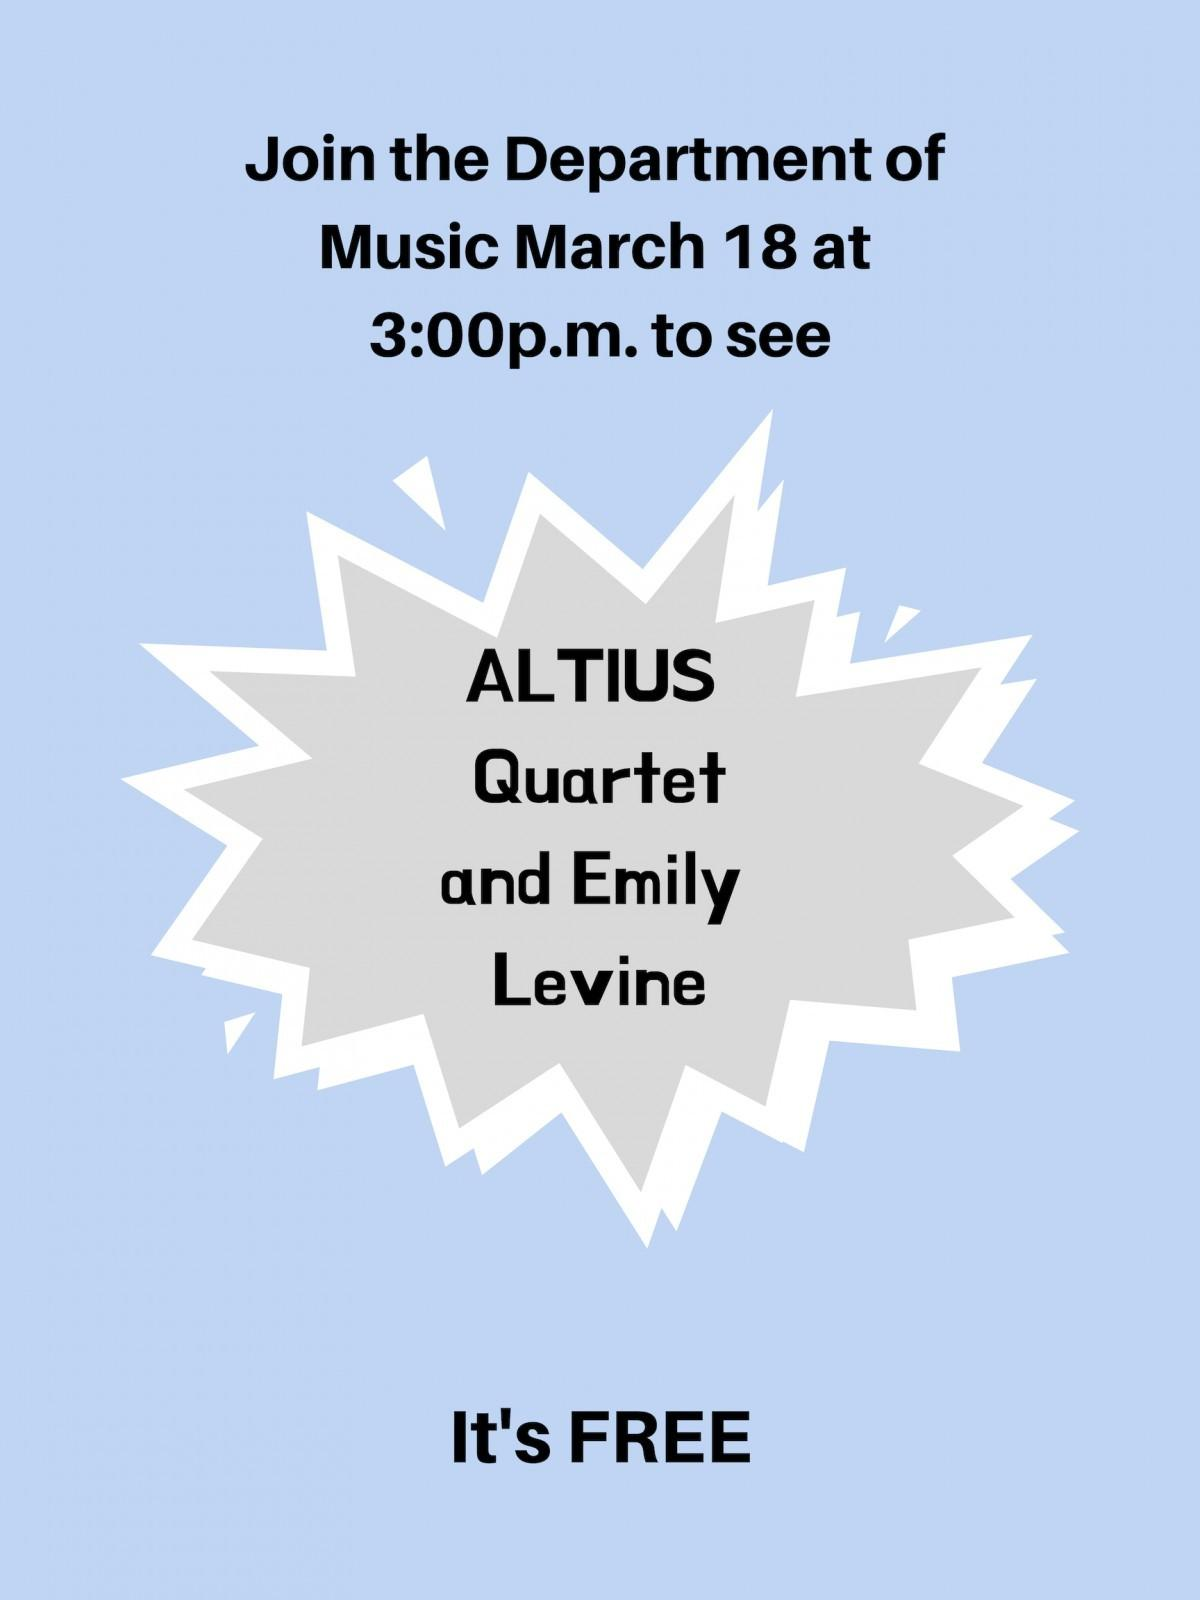 Guest recital to feature ALTIUS Quartet, principal DSO harpist